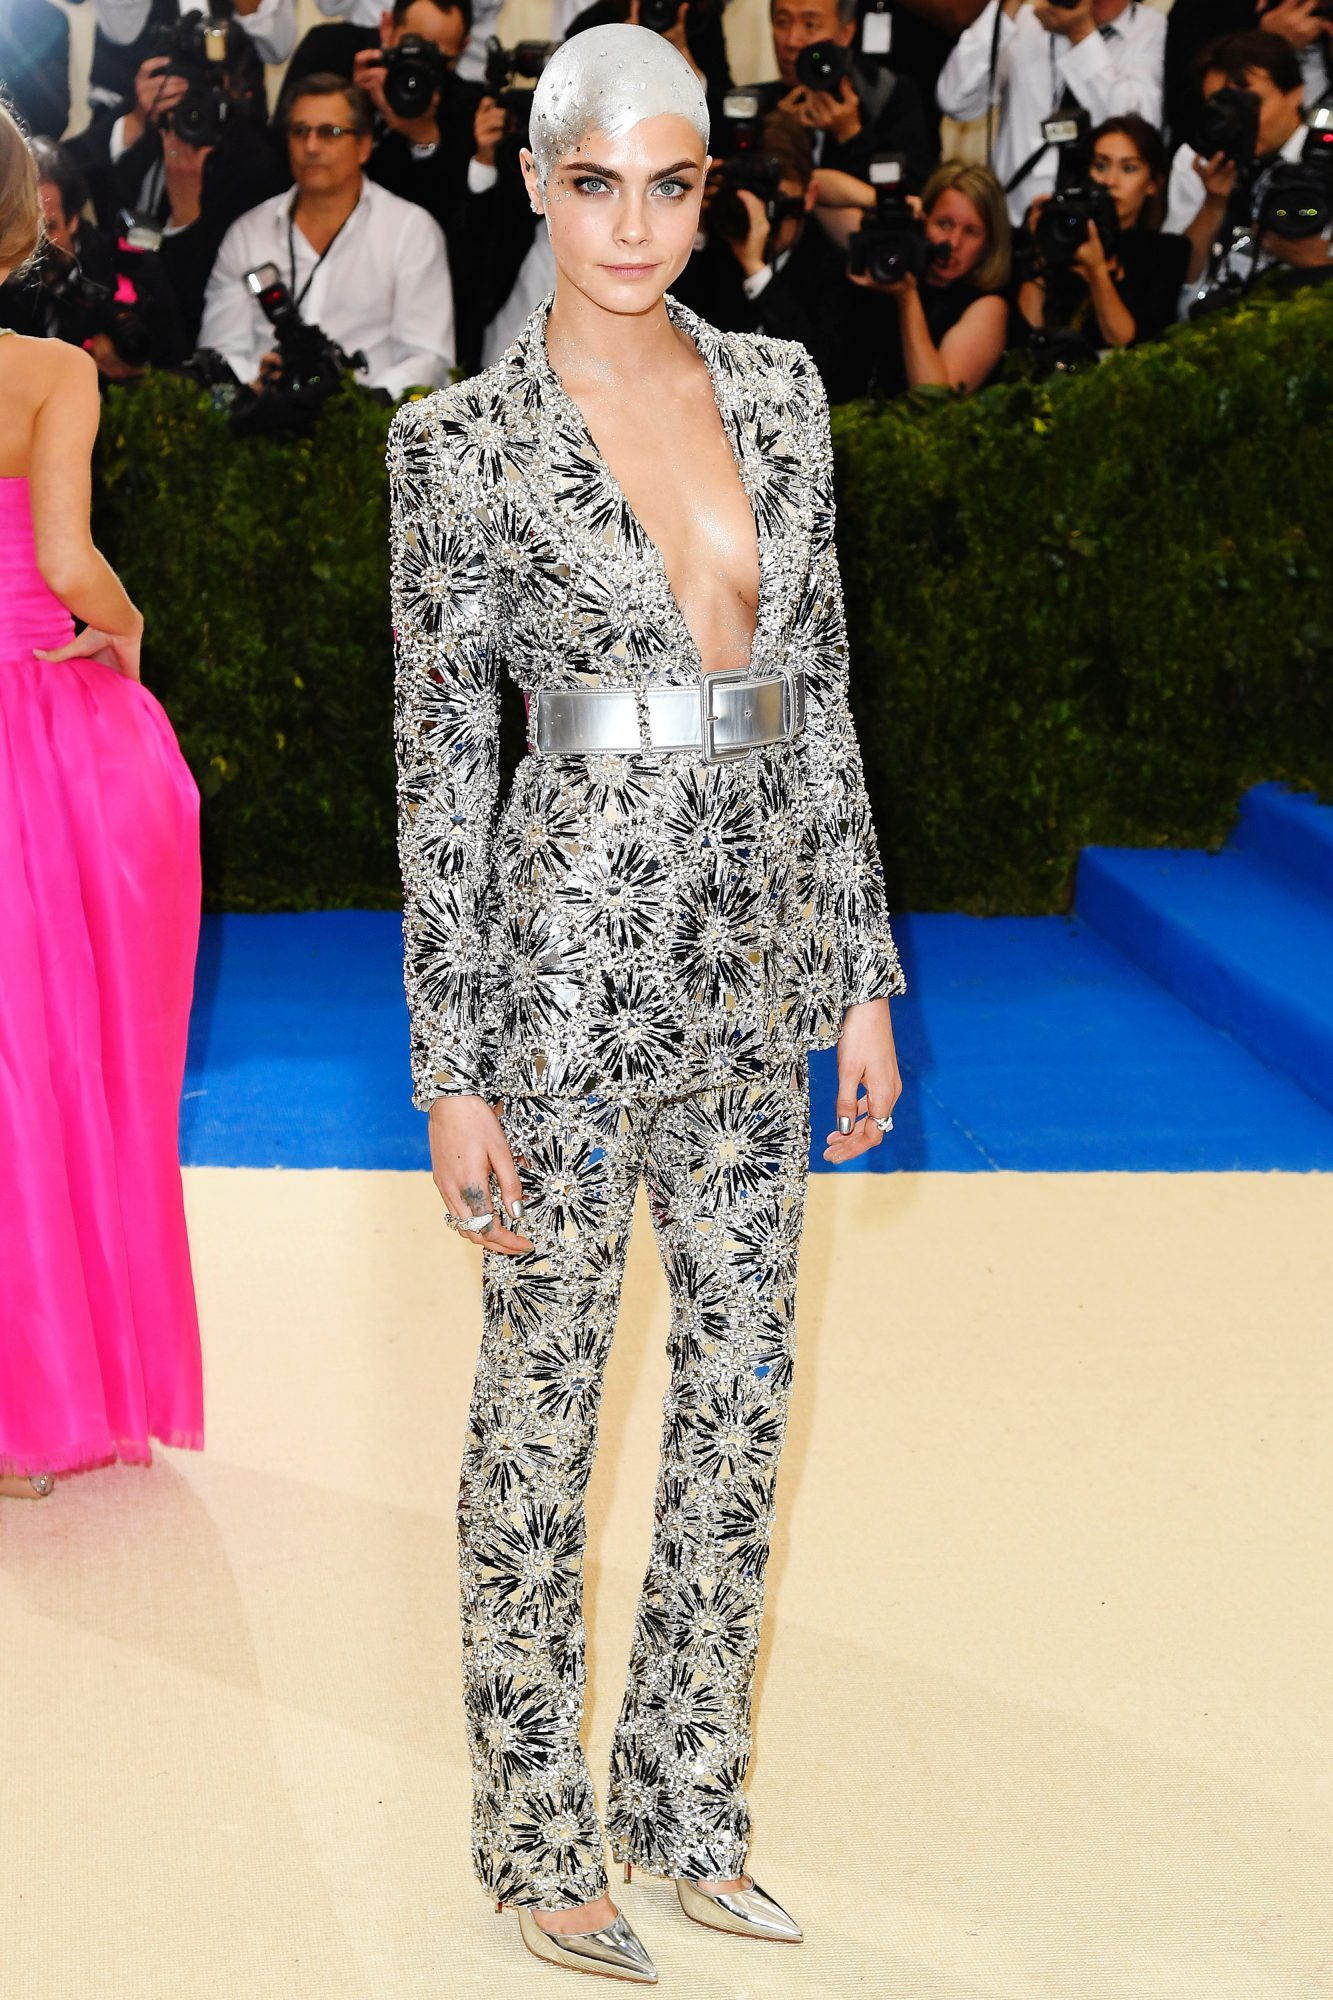 Cara Delevingne's Head-to-Toe Shine